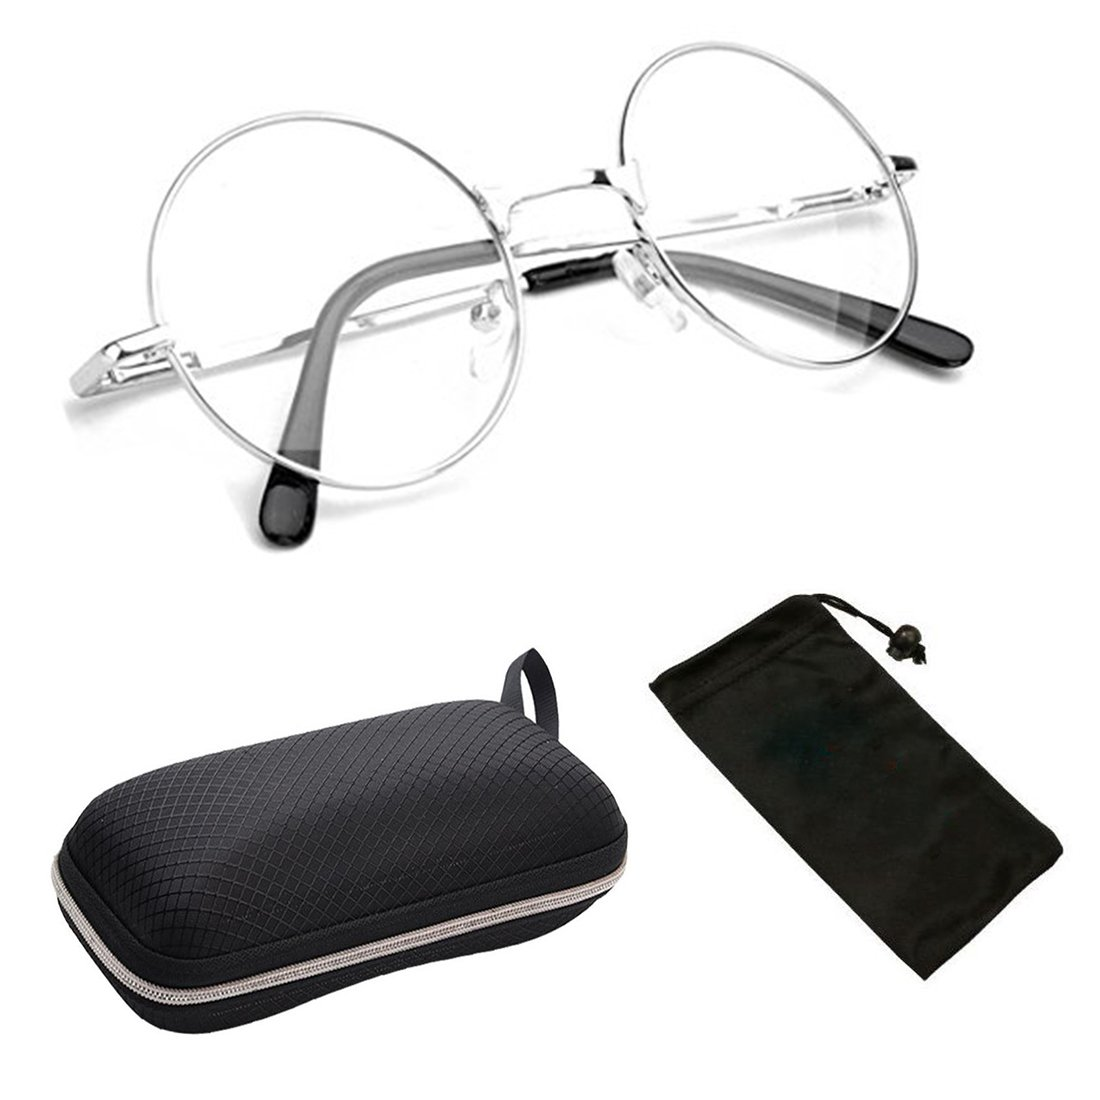 6ad6e19a96c1 Galleon - ( VRO1 Slv) Black Silver +1.25 One Stop Discount Shop- Designer Round  Oval Reading Glasses Reader Spring Hinge Harry Metal